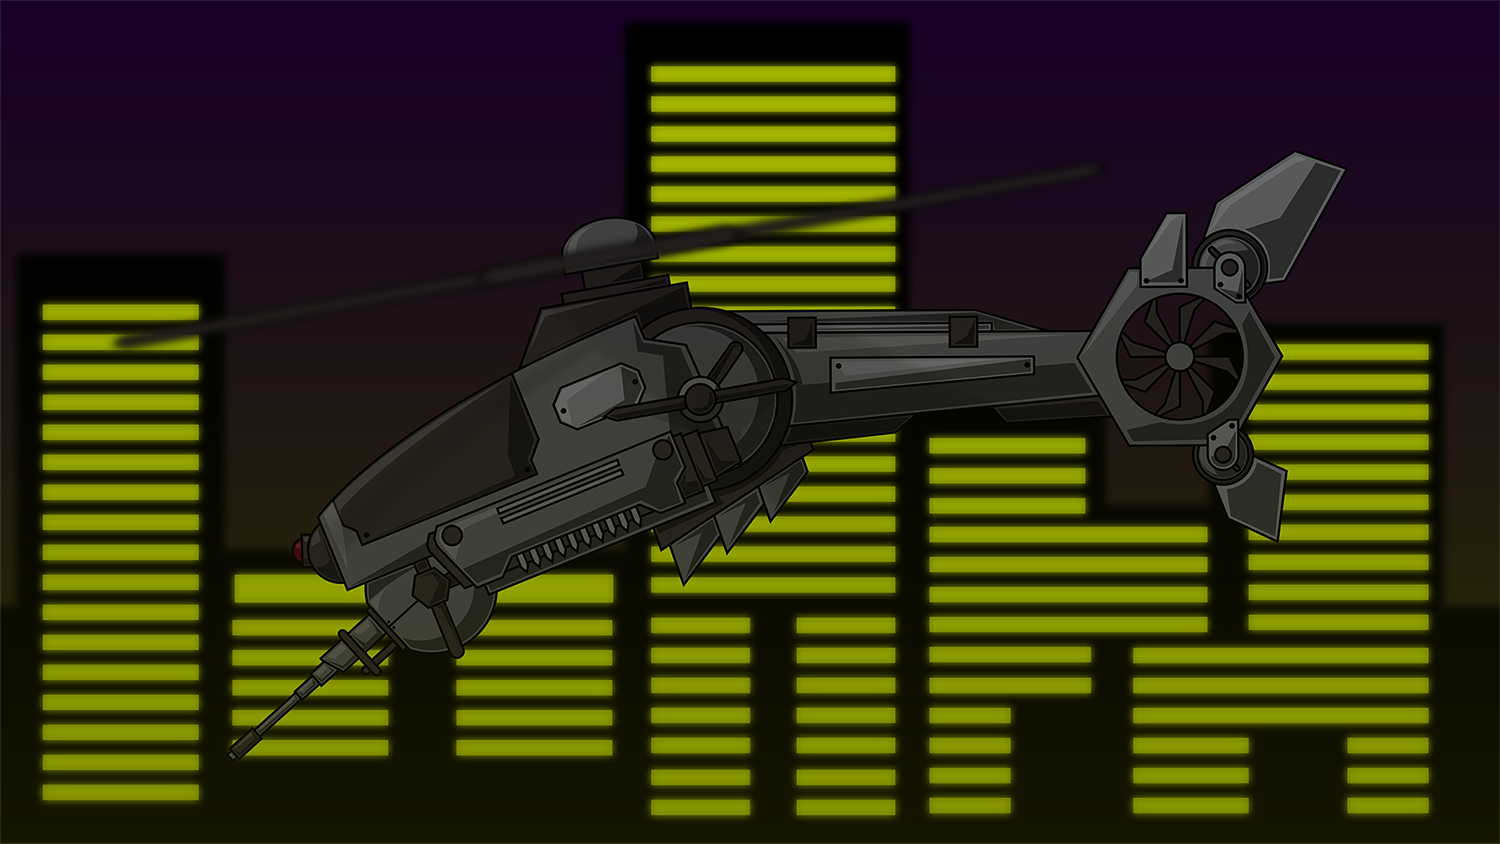 Scifi helicopter